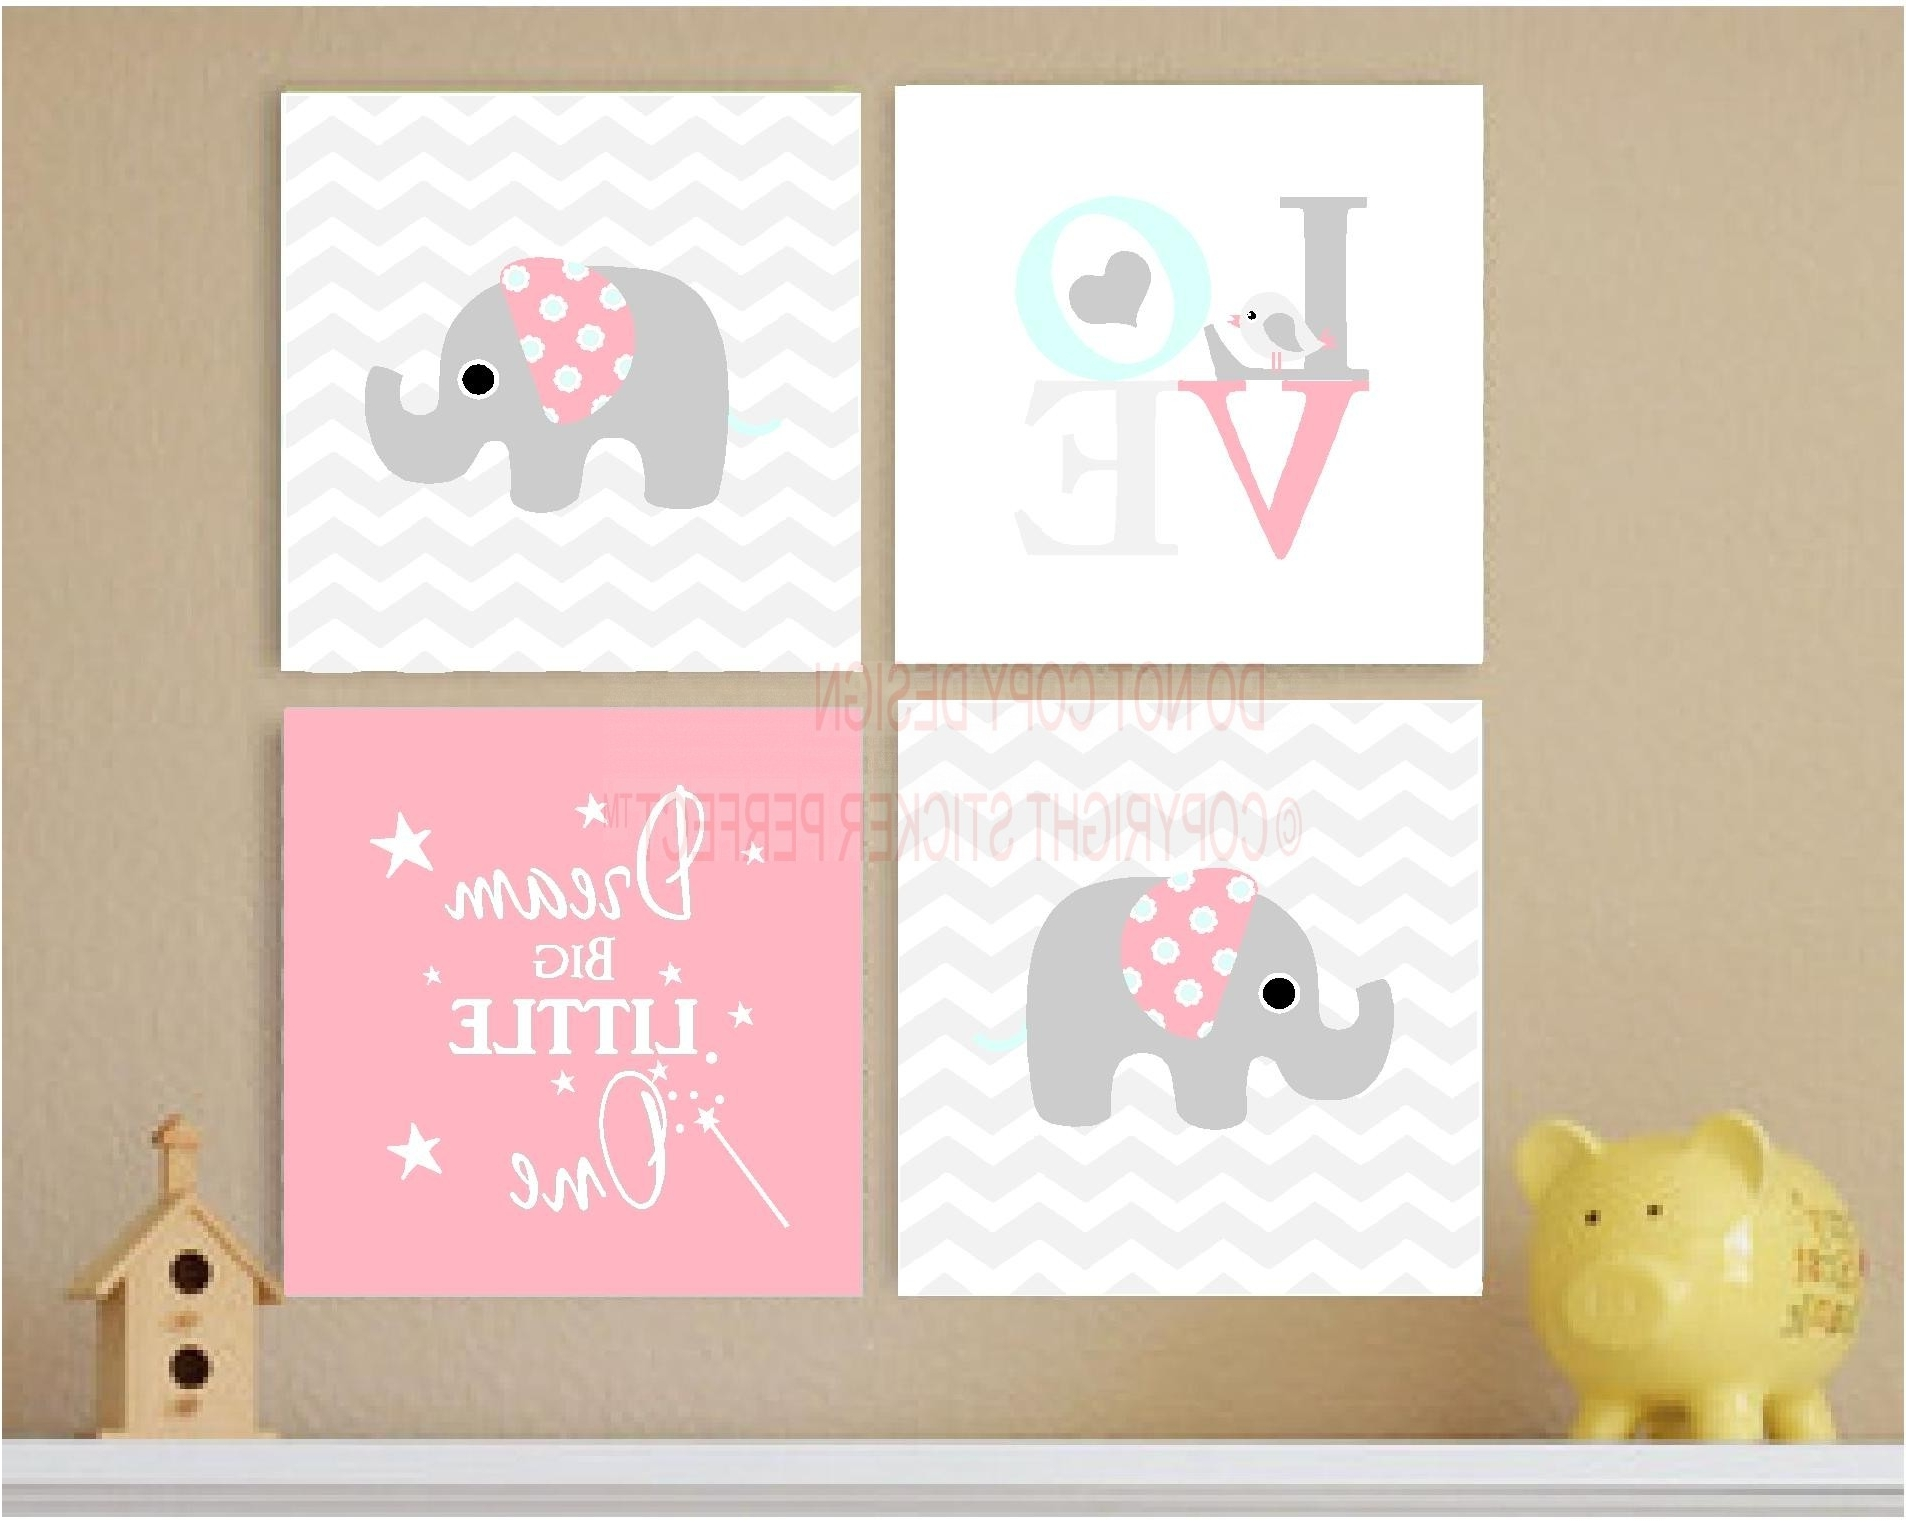 Framed Canvas Print Love 4 Piece Set #2 Cute Elephant Bird Pertaining To Recent Bird Framed Canvas Wall Art (View 14 of 20)